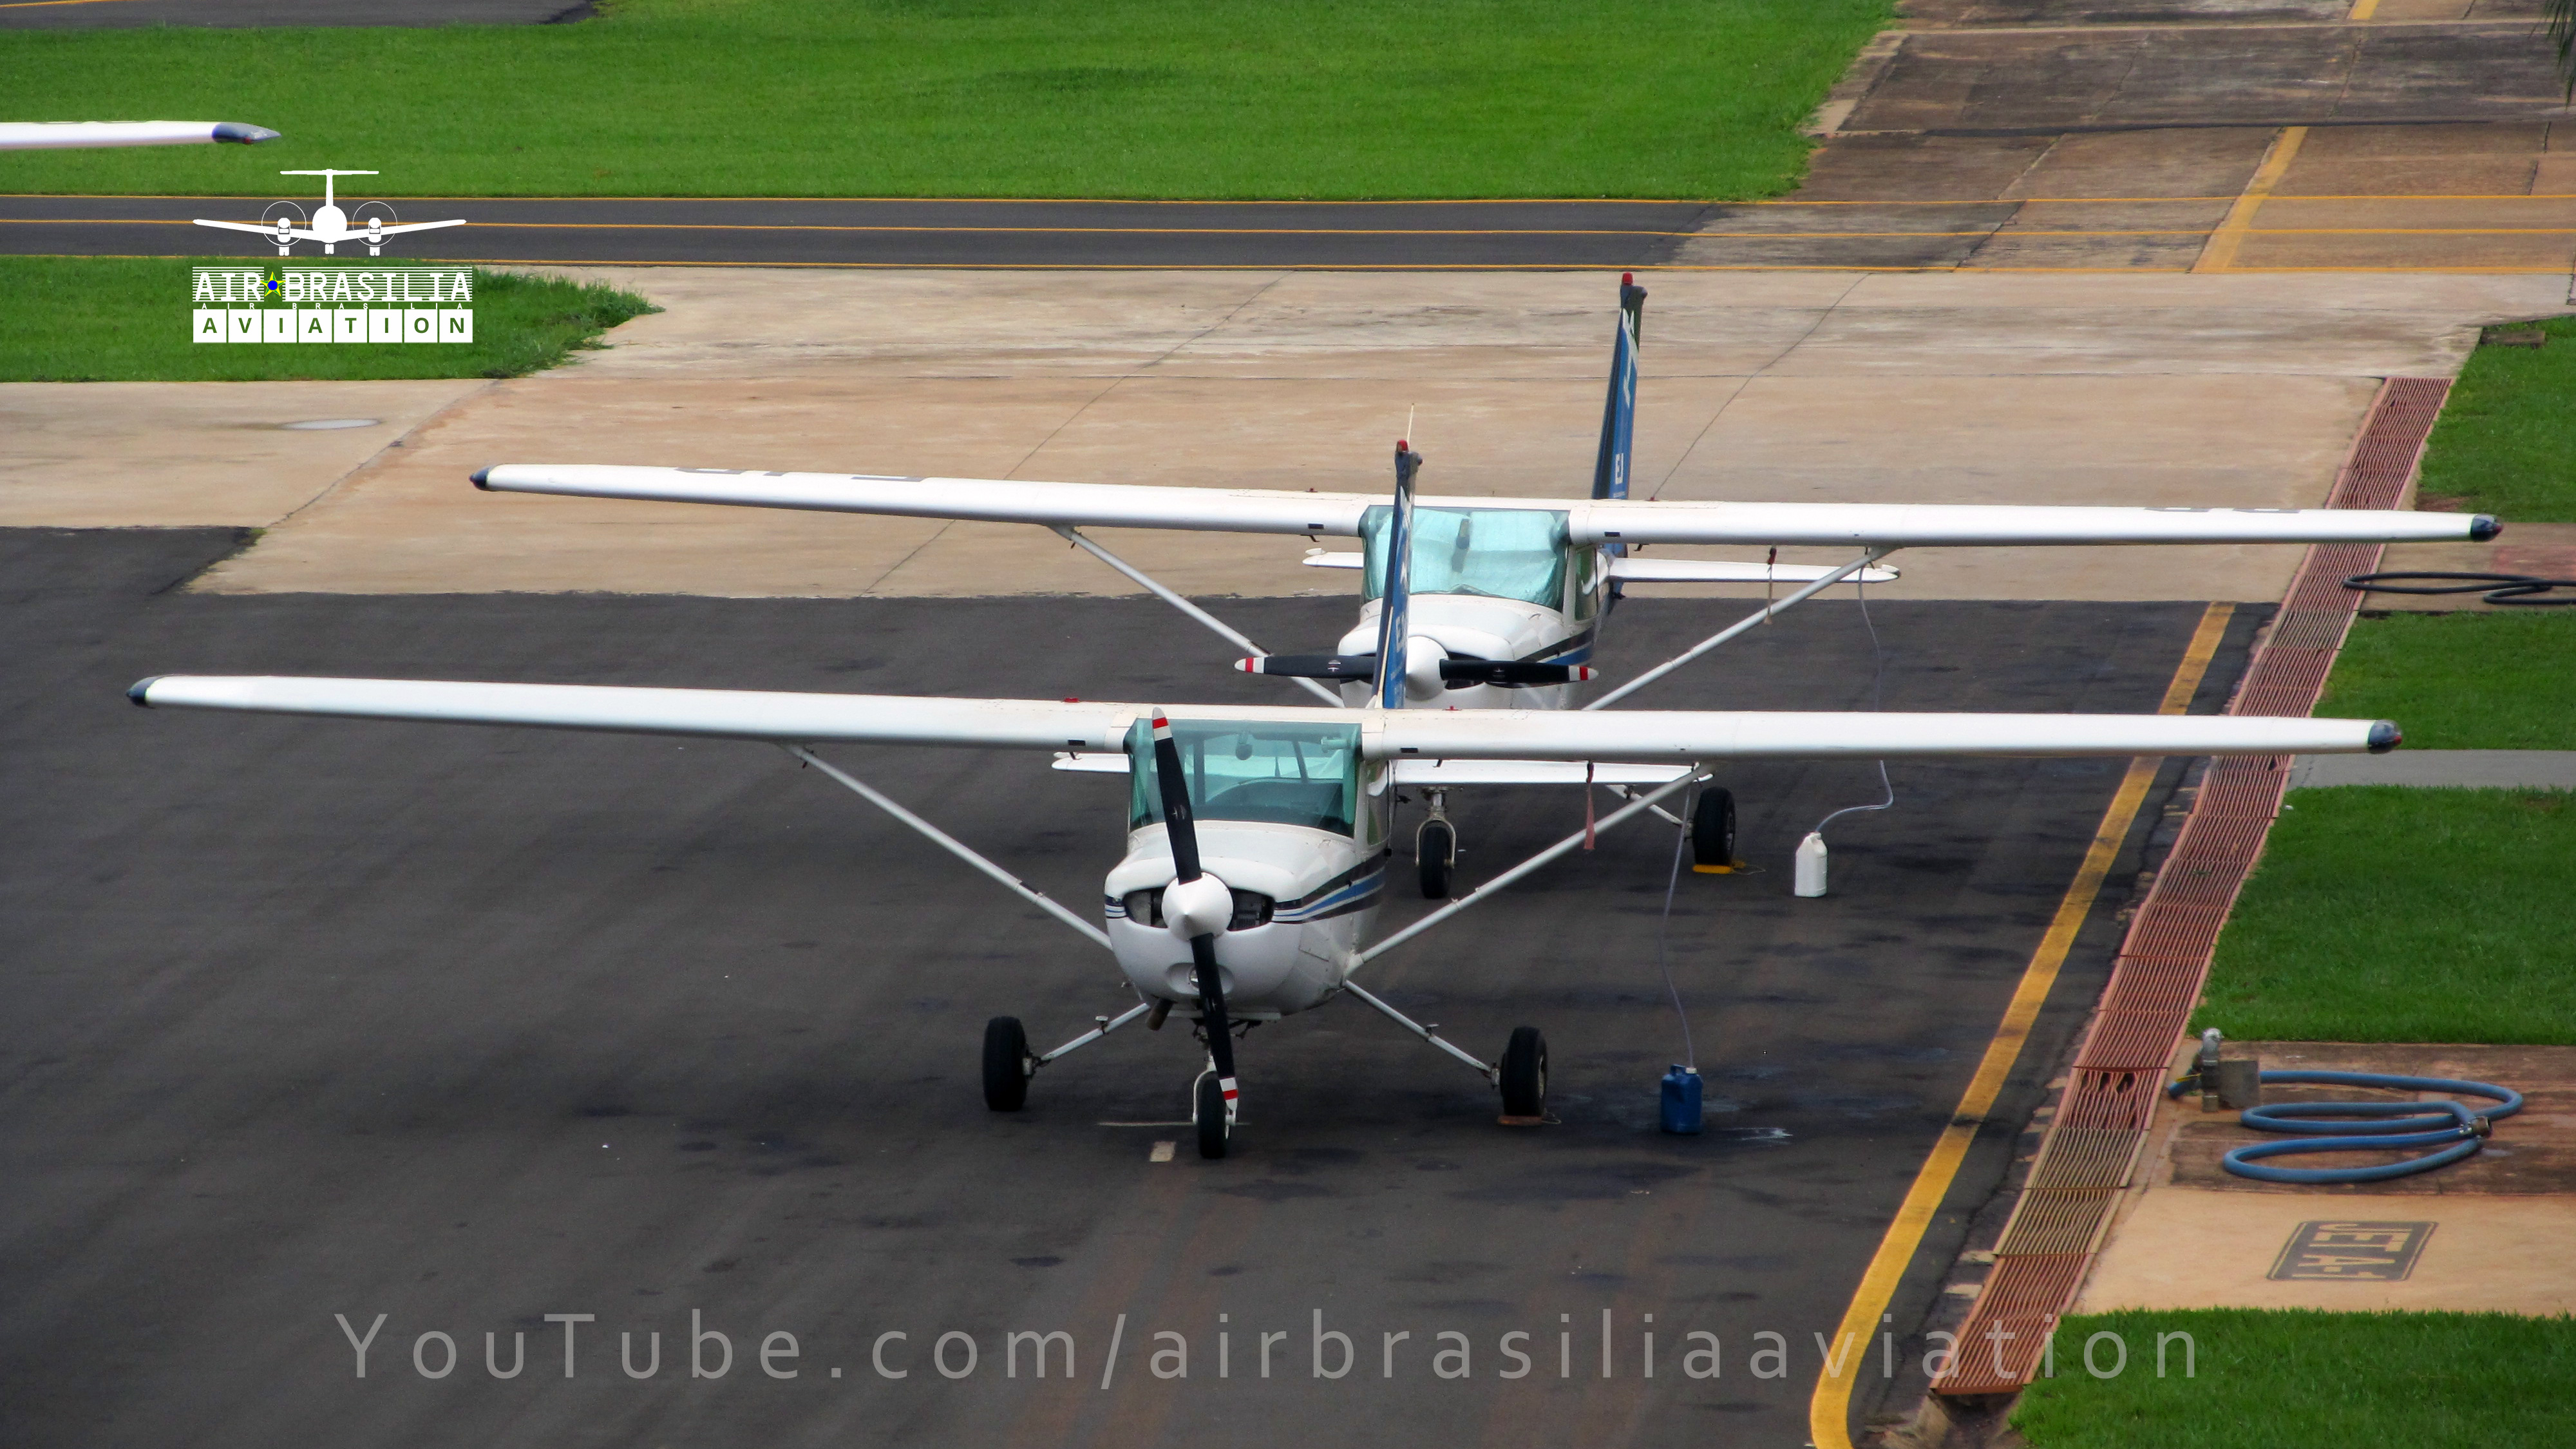 Photo by GSCG member Air Brasilia Aviation #avgeek #plusonly